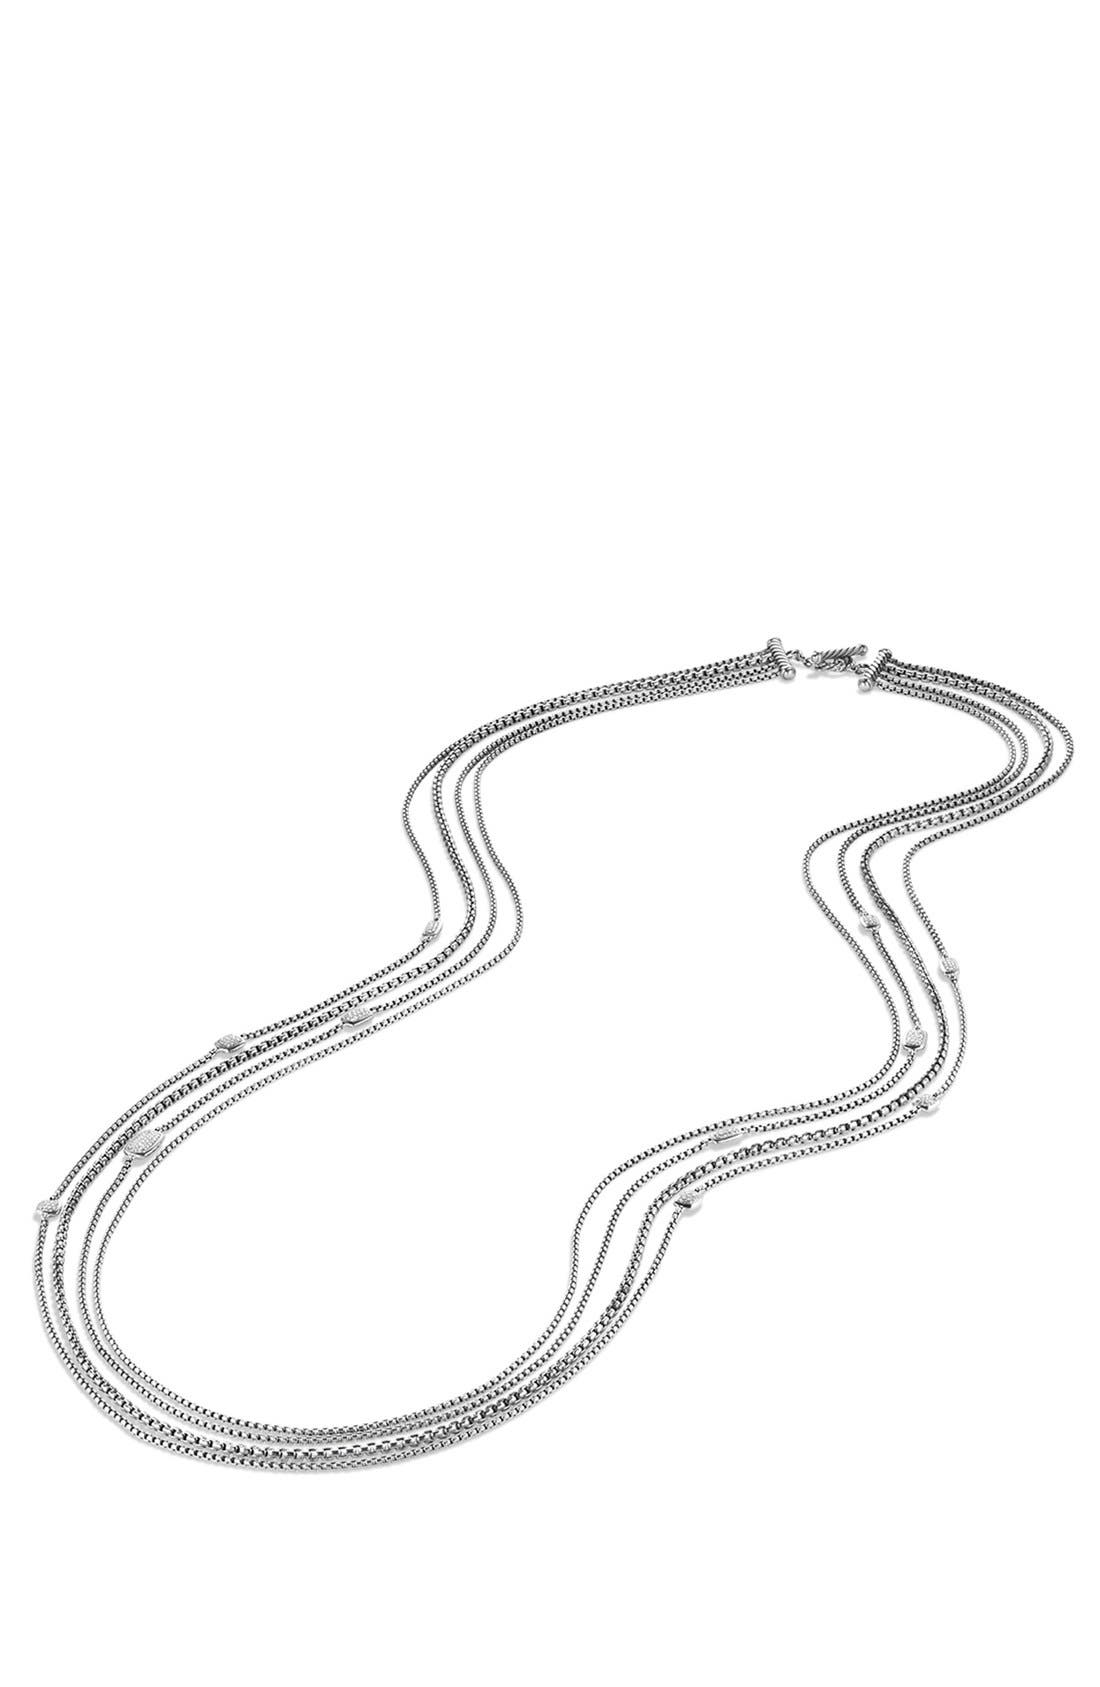 'Confetti' Station Necklace with Diamonds,                             Alternate thumbnail 4, color,                             040